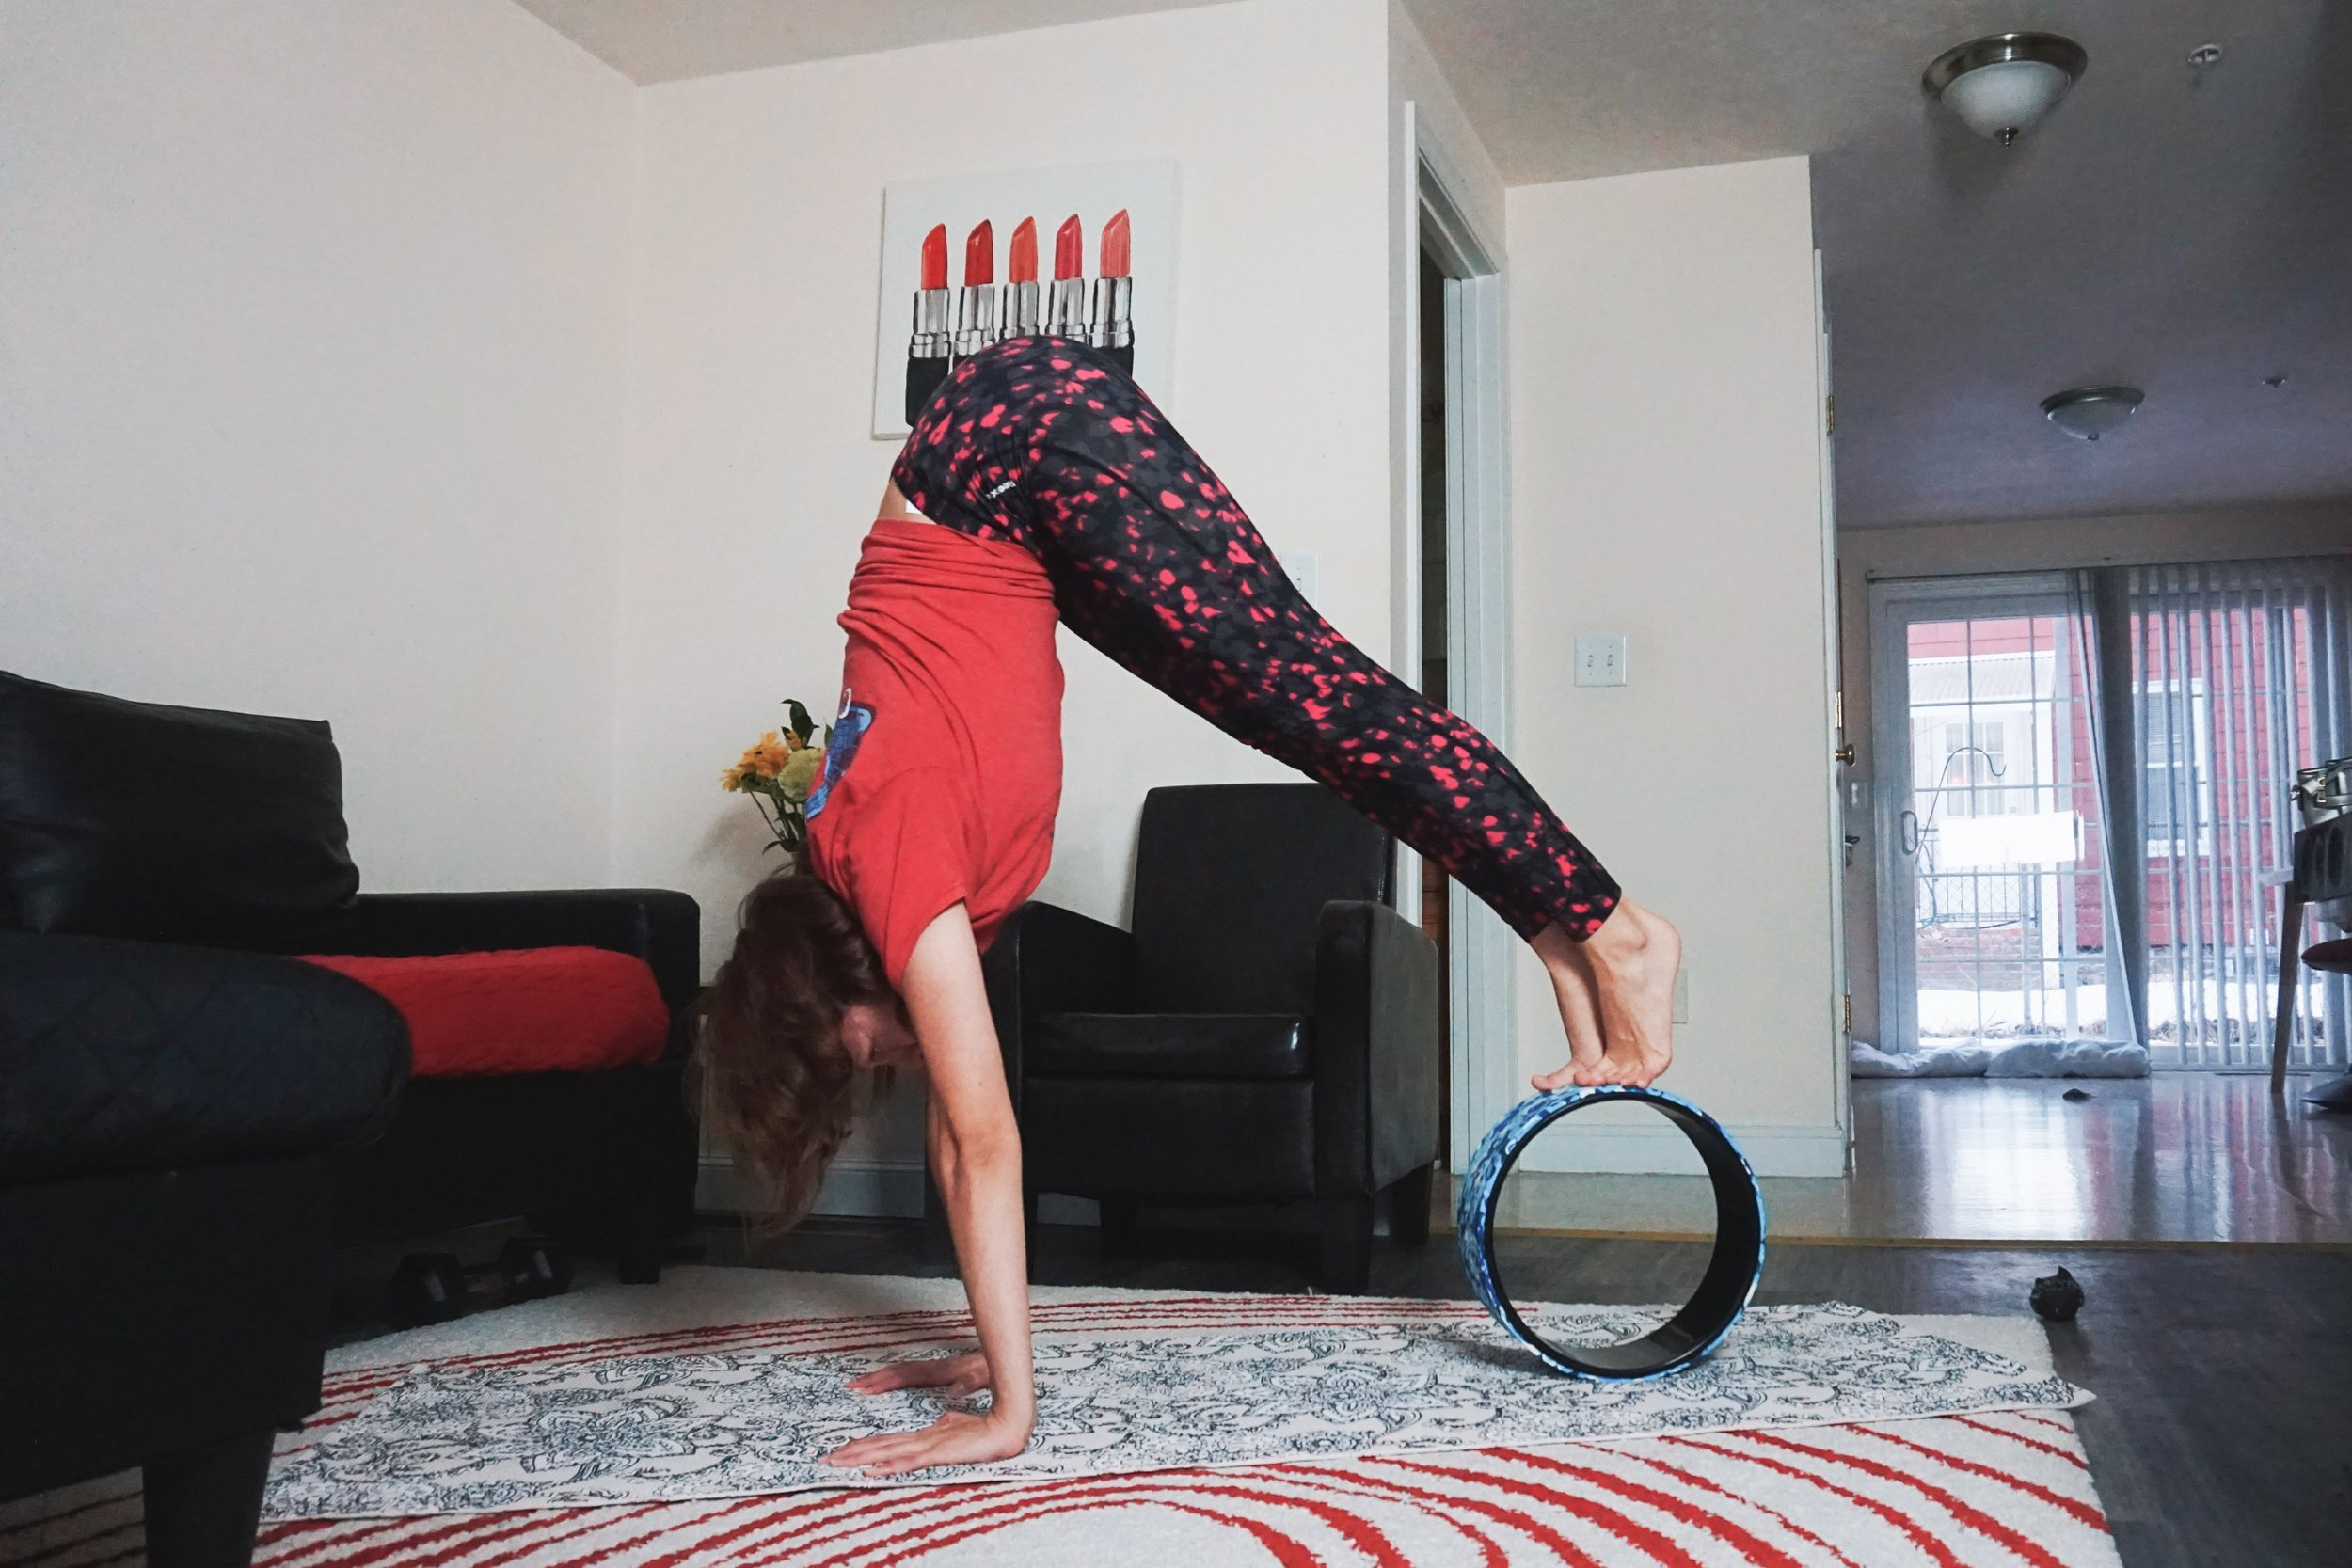 A blogger is showing how to use a yoga wheel to do a handstand.